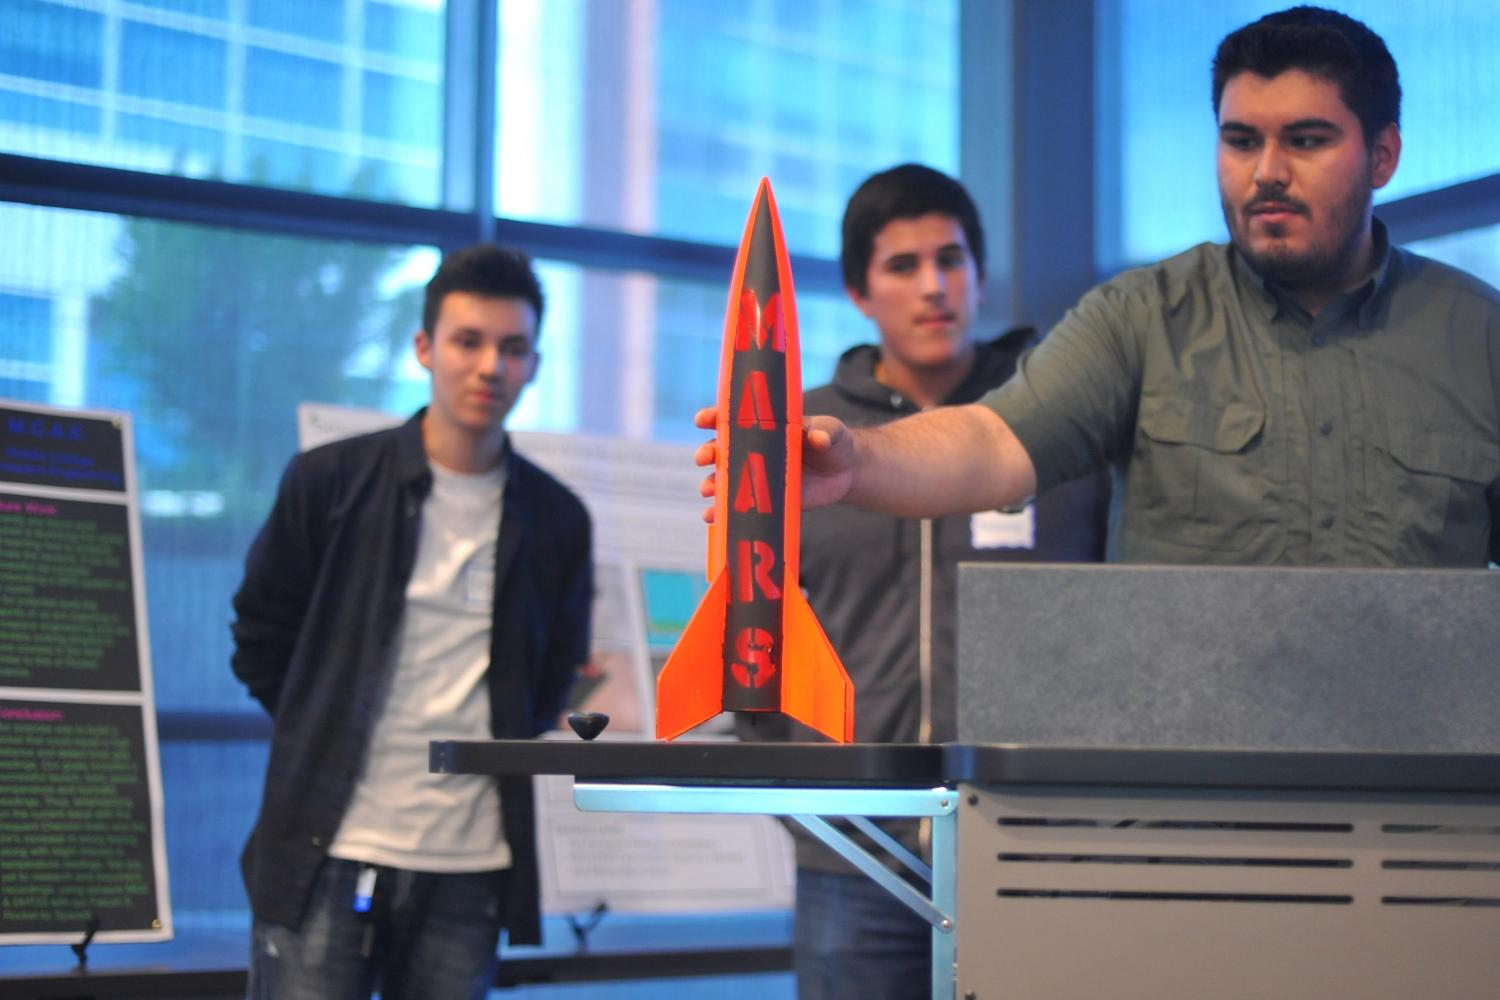 Engineering+major+Manuel+Ayala+%28right%29+presents+a+rocket+his+team+worked+on+during+the+semester+during+the+inaugural+Student+Research+Symposium+event+held+in+Fireside+Hall+on+May+4.